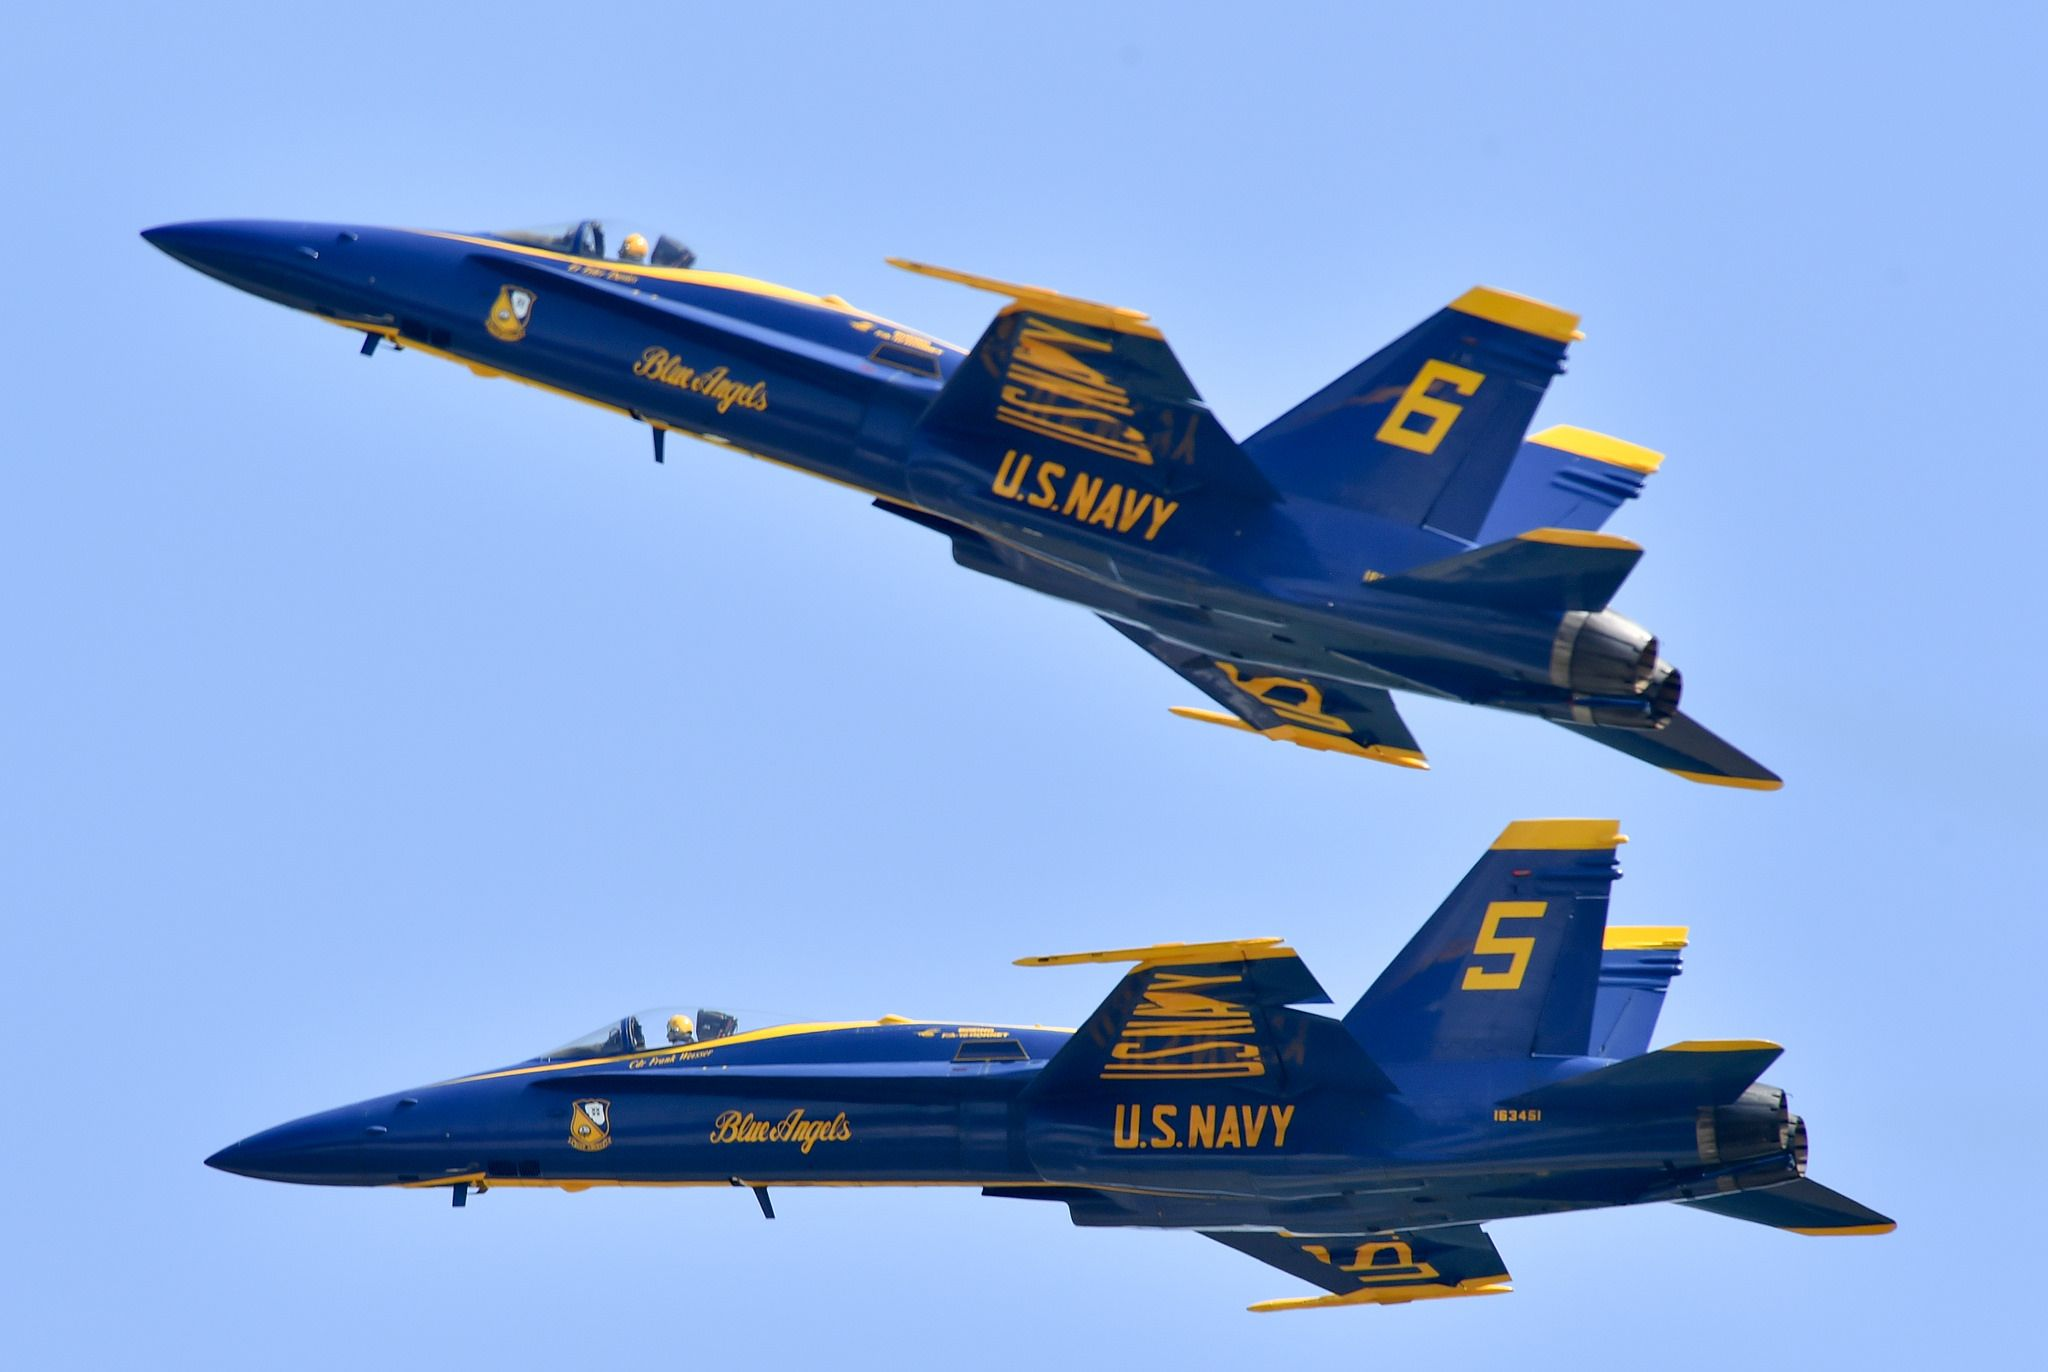 The Blue Angels perform at the Wings Over Wayne Air Show